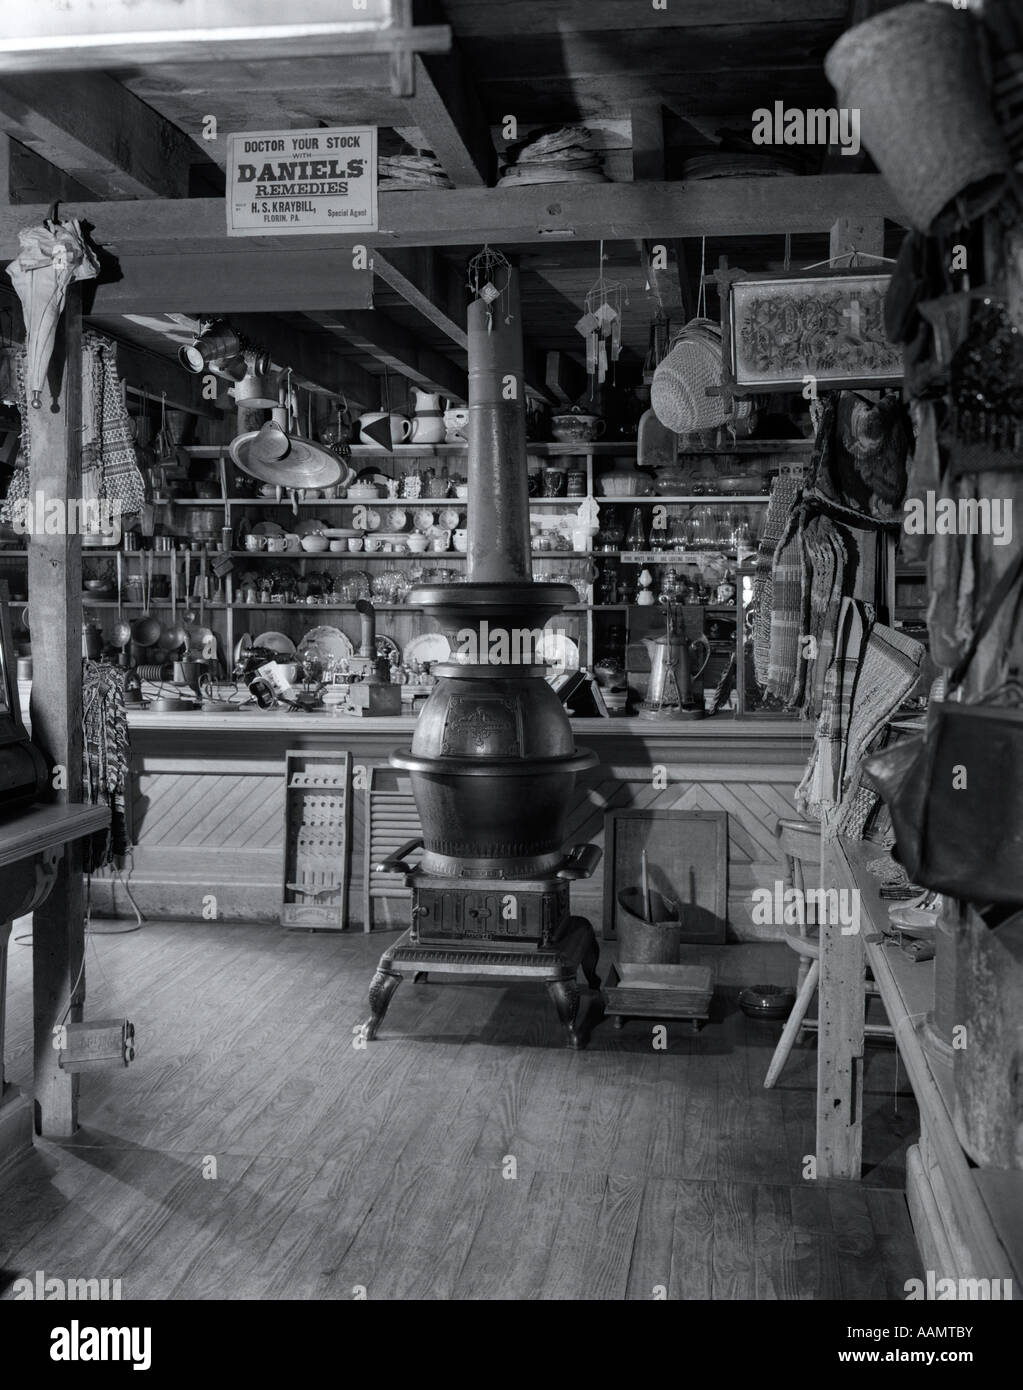 1930s COUNTRY GENERAL STORE INTERIOR WITH CAST IRON POTBELLY STOVE ...